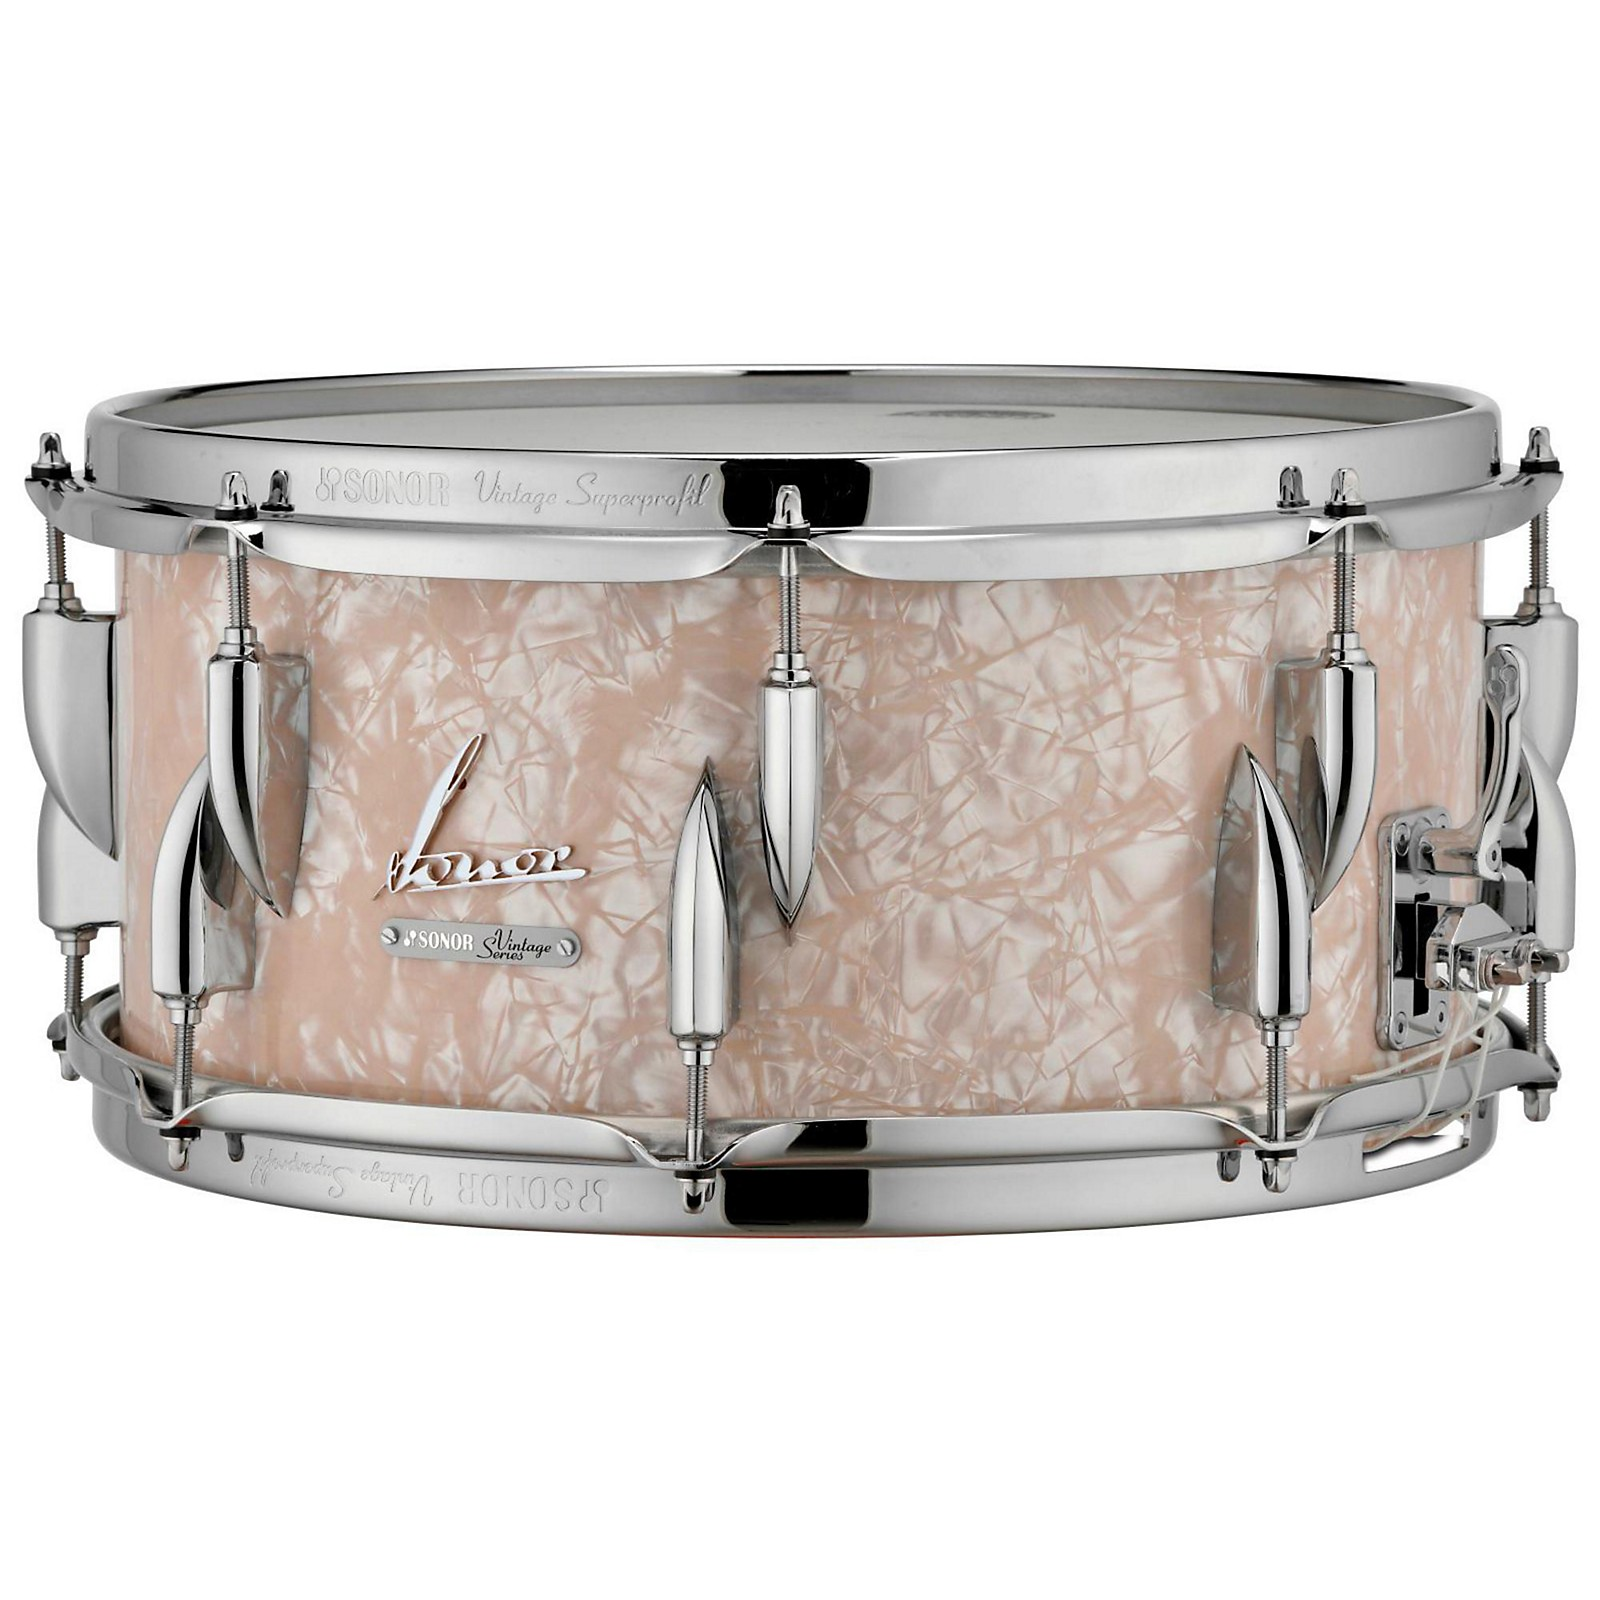 Sonor Vintage Series Snare Drum